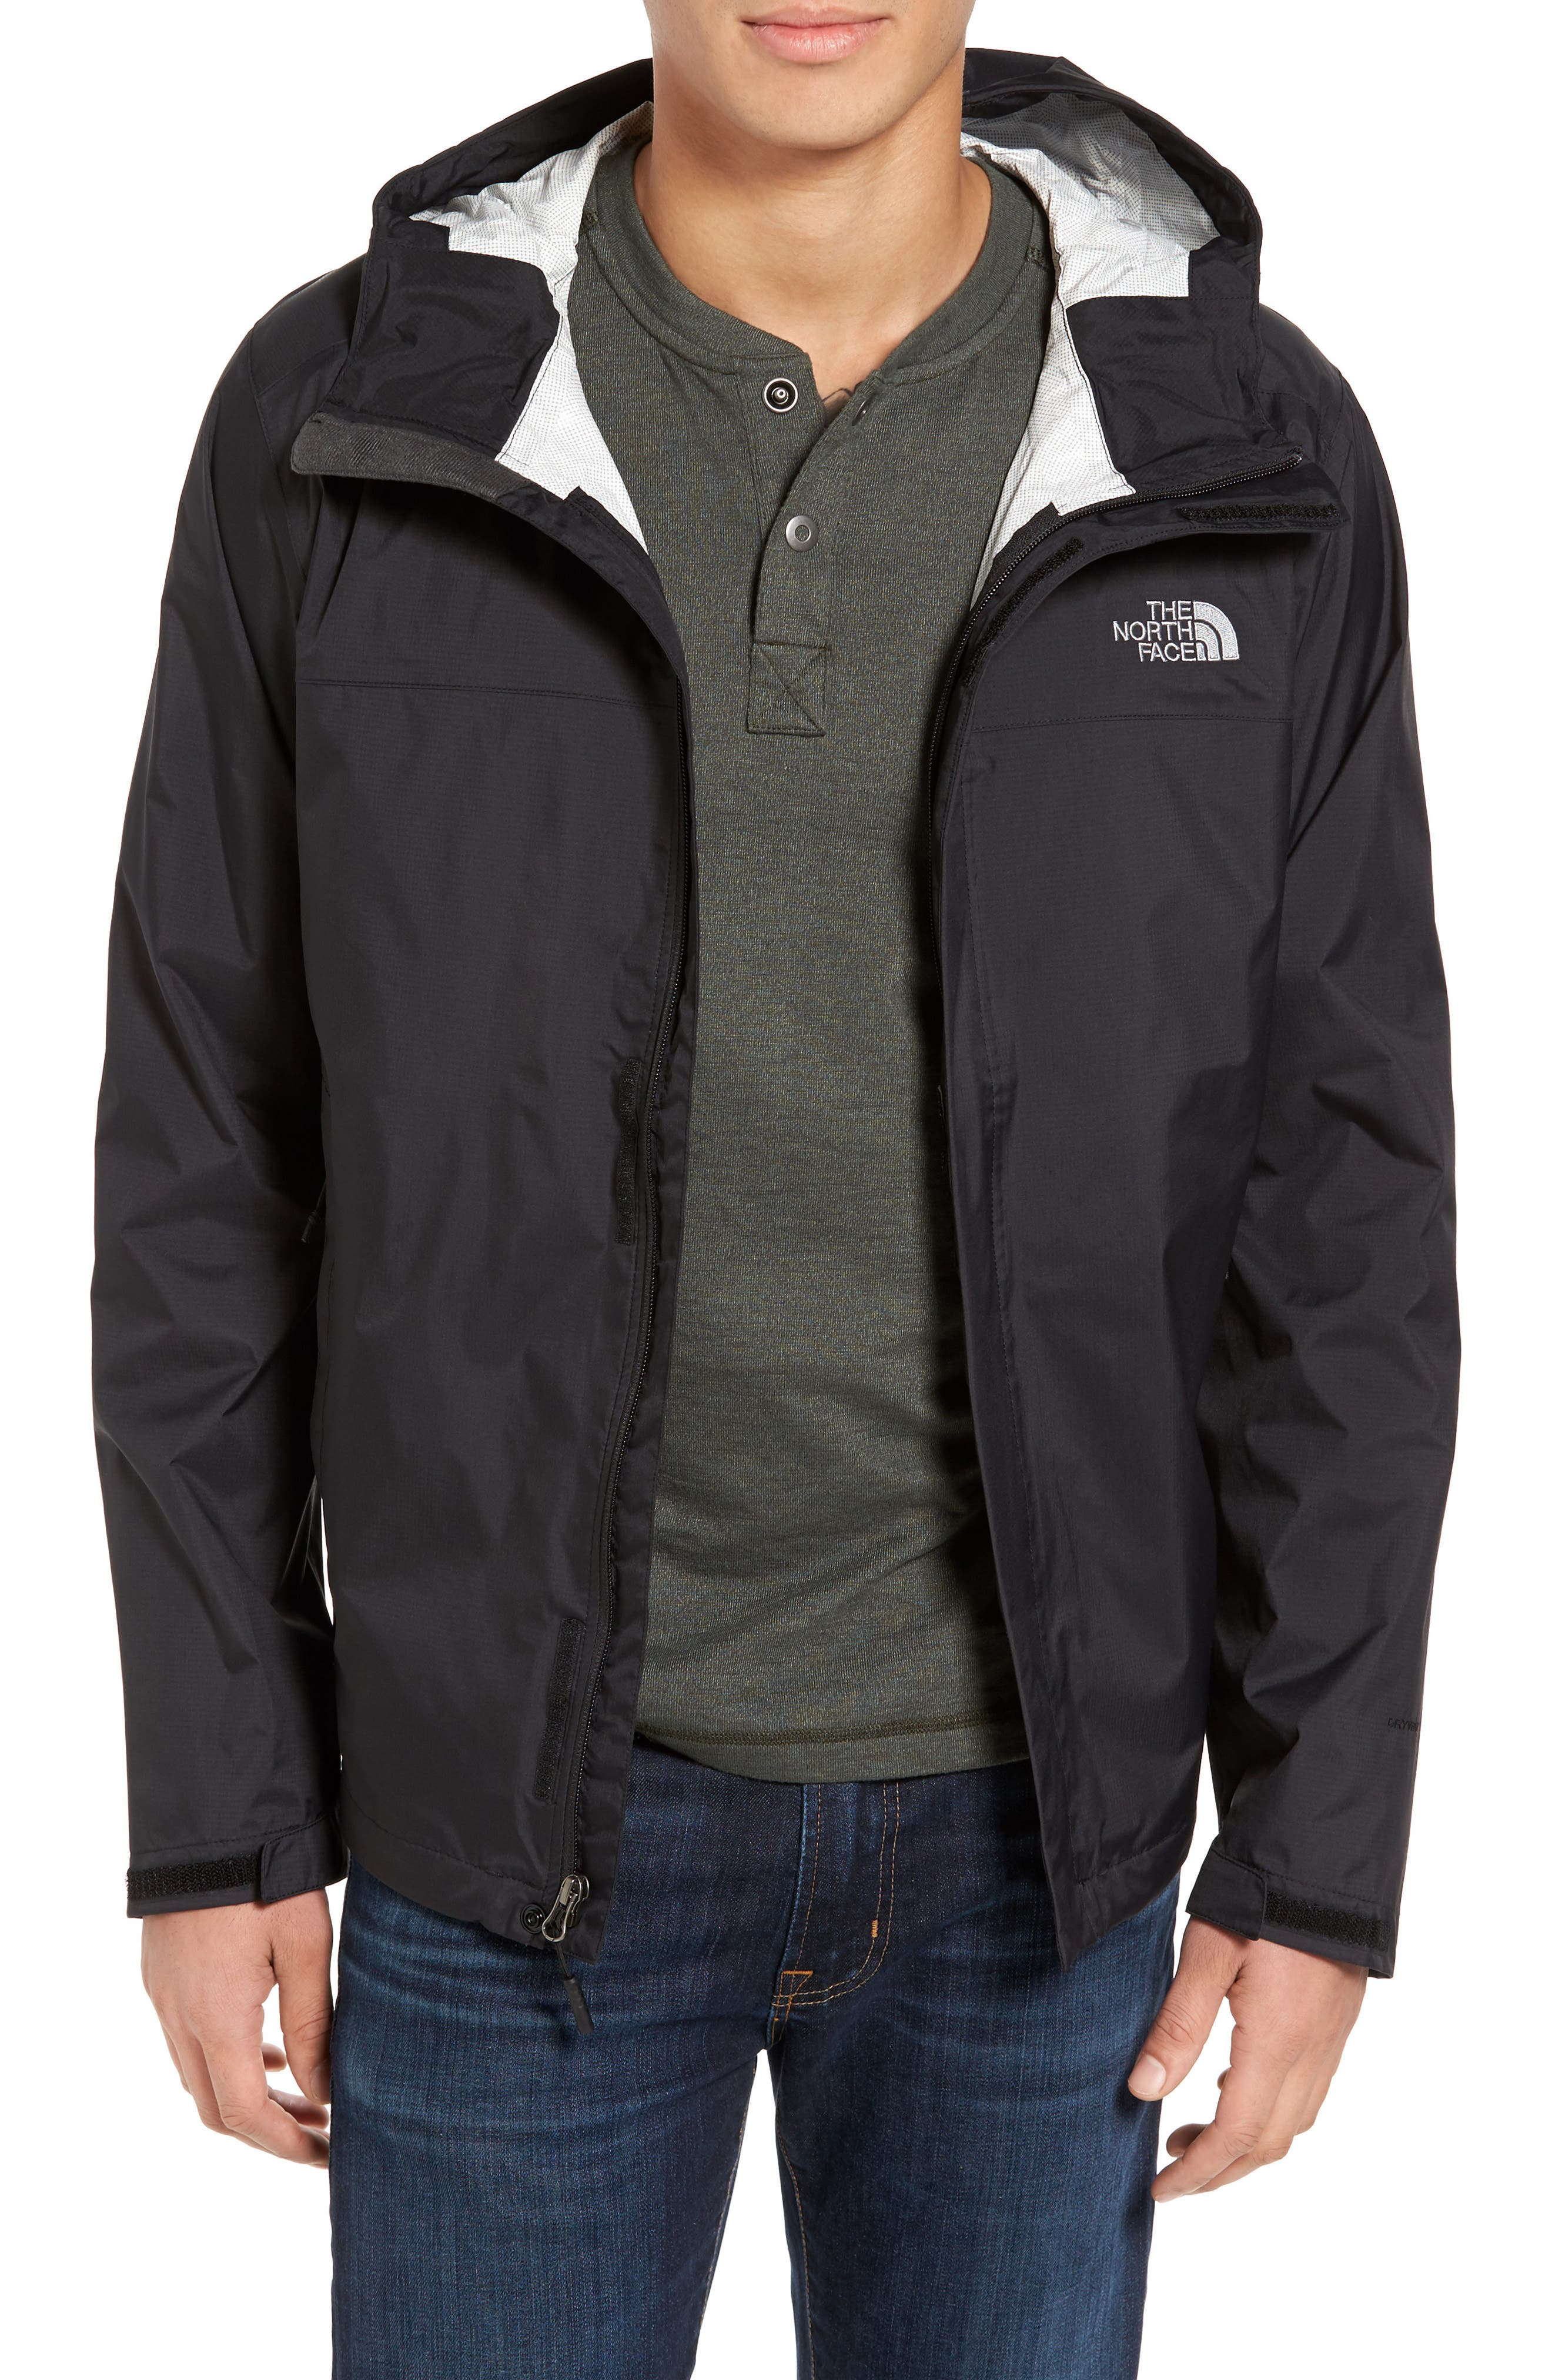 The North Face Venture 2 Waterproof Jacket (Big & Tall)